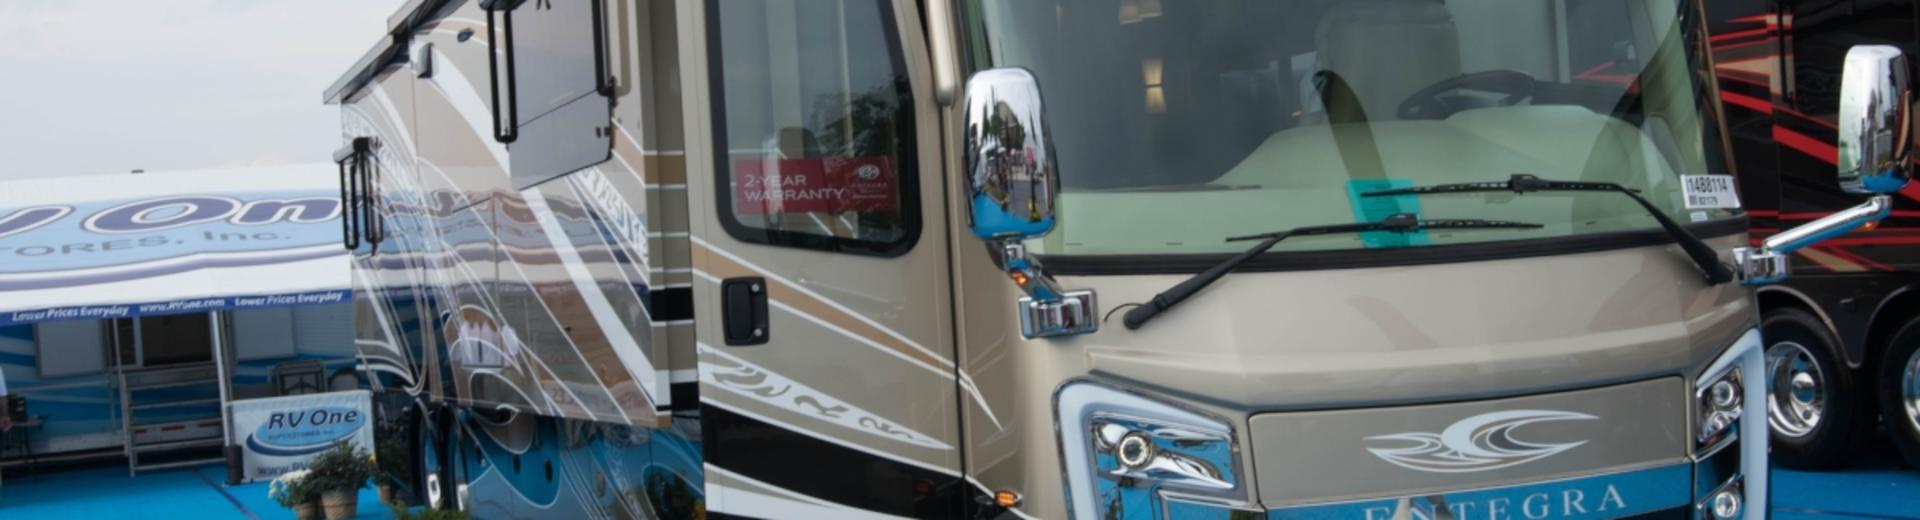 See acres of RVs in Hershey PA at America's Largest RV Show